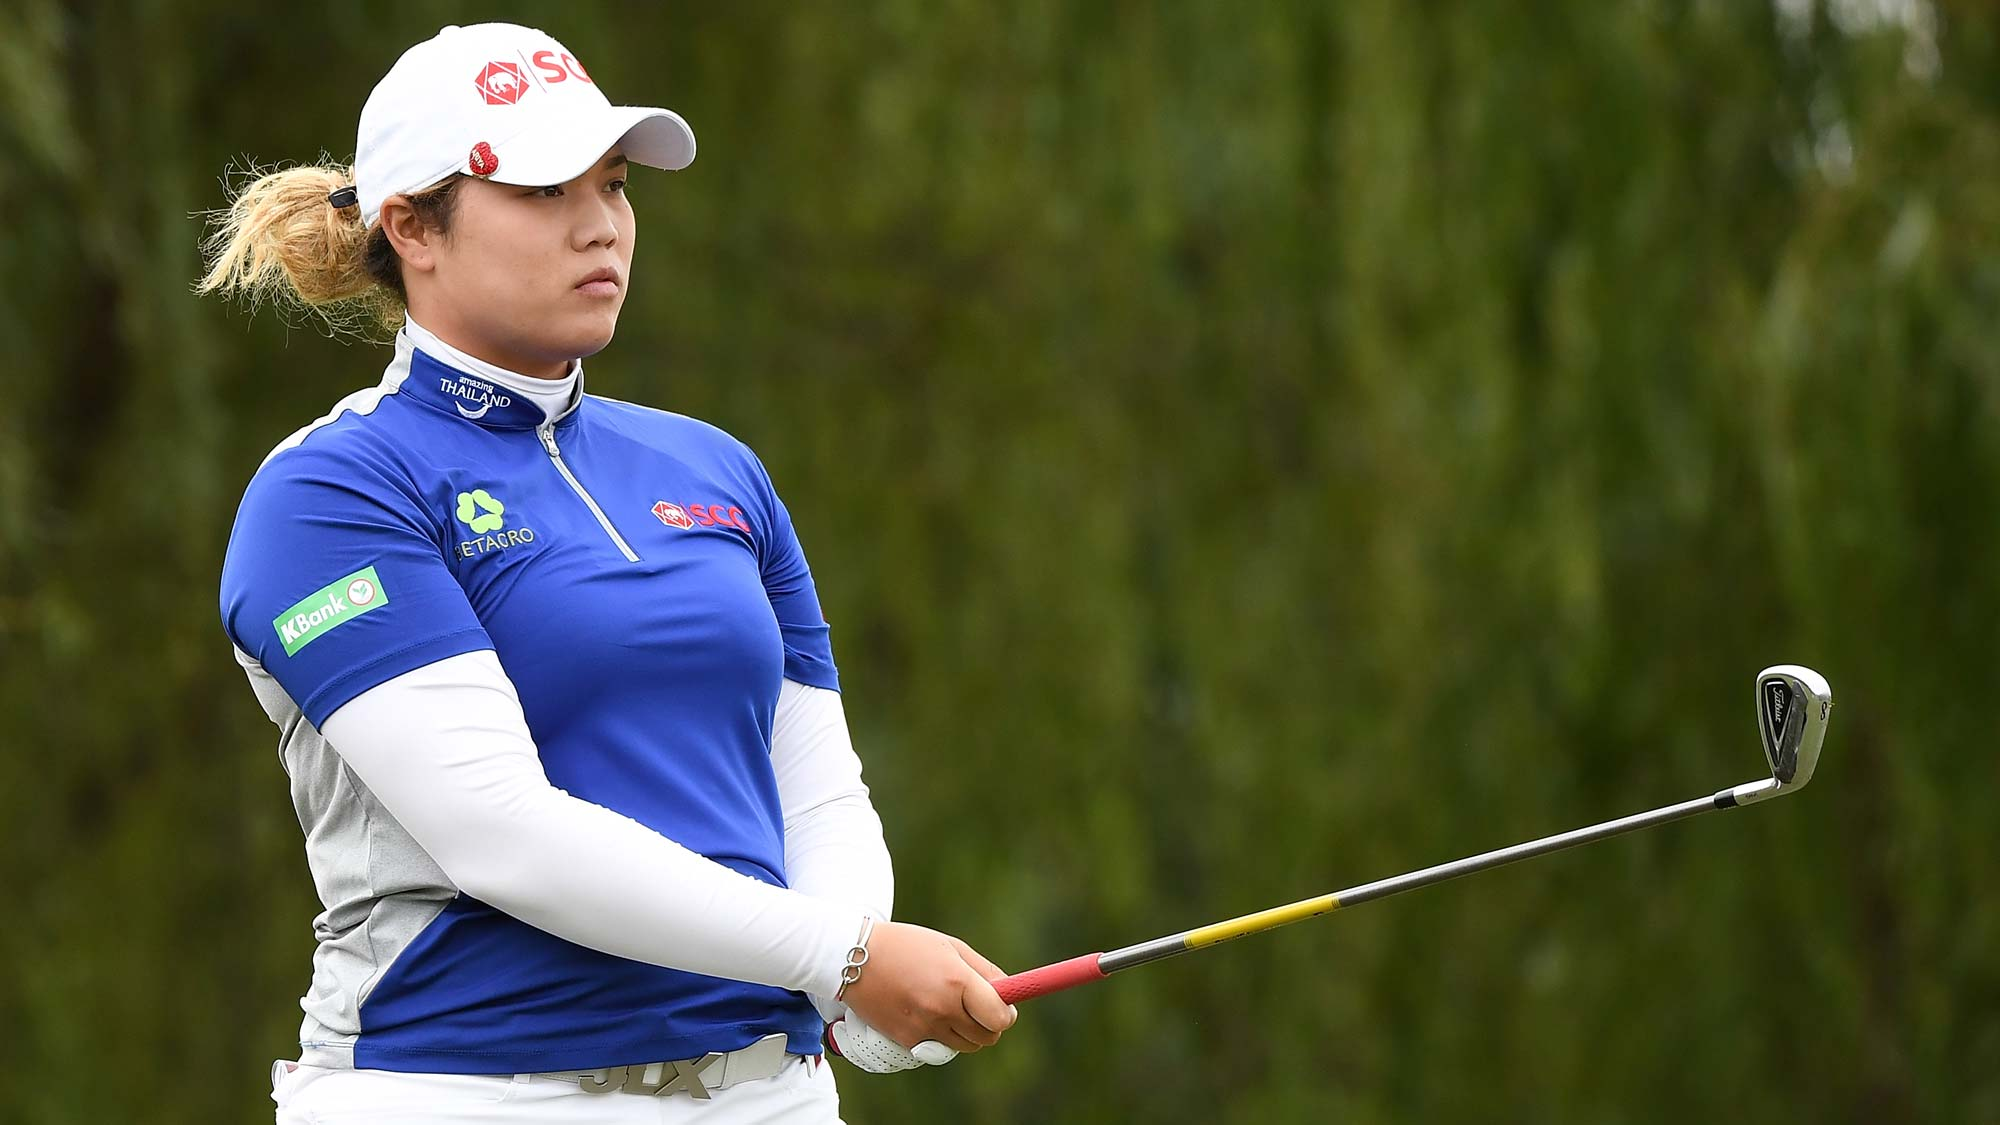 Ariya Jutanugarn of Thailand plays a shot during the third round of the Buick LPGA Shanghai